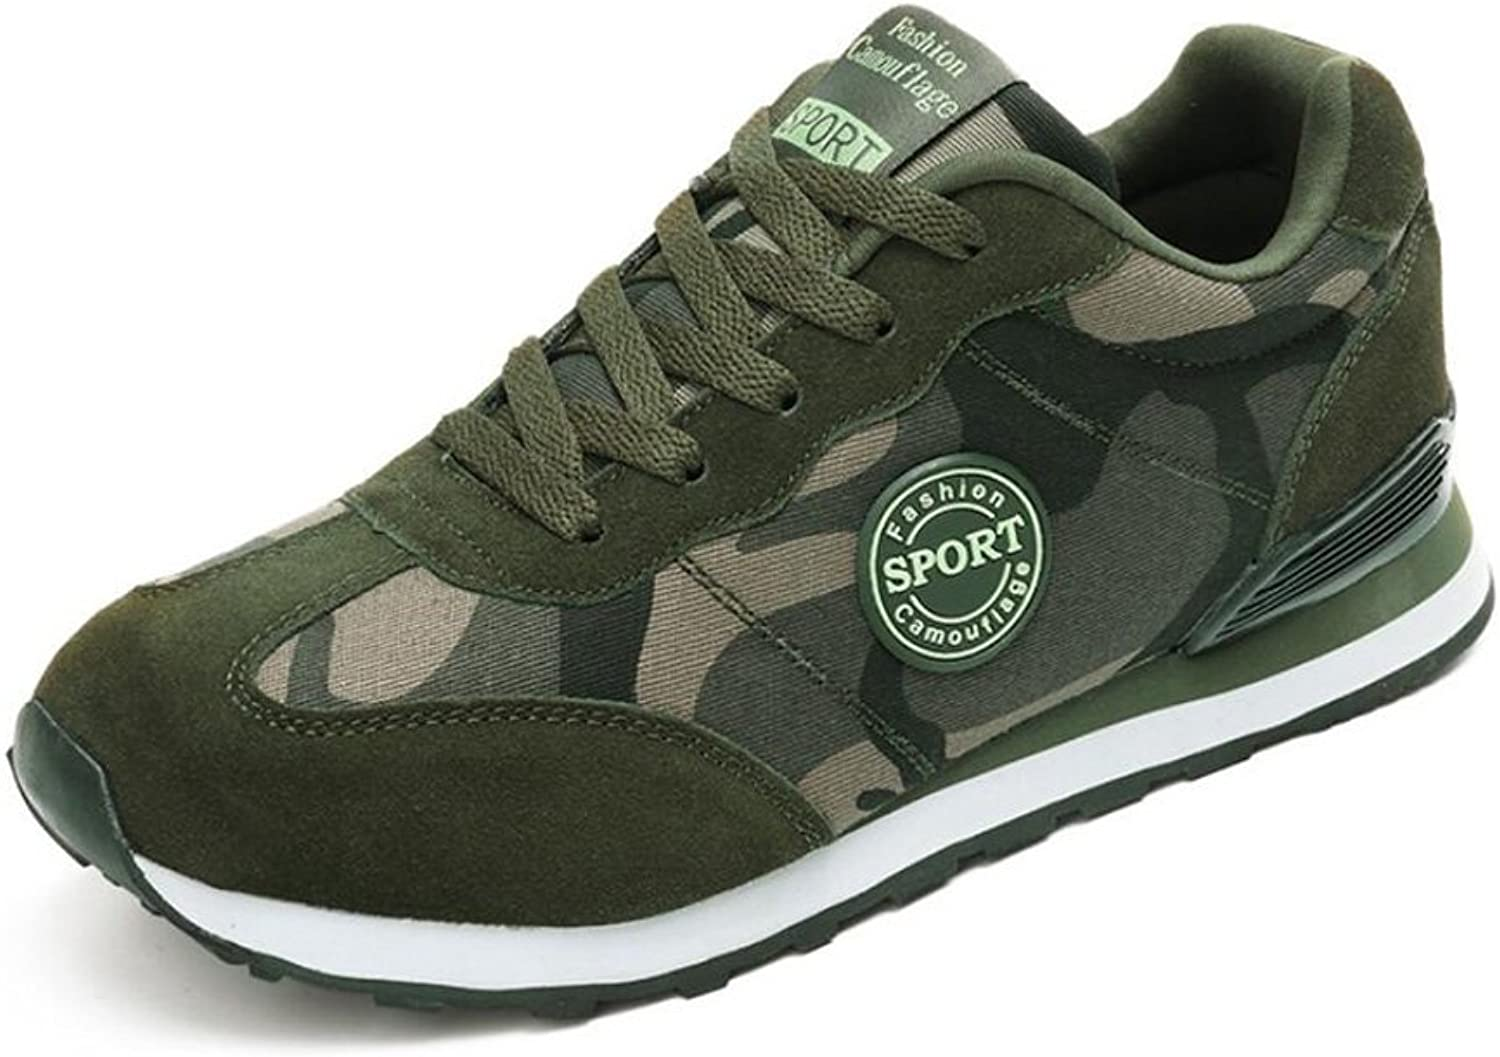 WYX shoes Men's Sneakers, New Canvas Couple Models Camouflage shoes,Outdoor Training shoes ,Military Green shoes,Casual Travel shoes,Single shoes outdoor (color   1, Size   42)